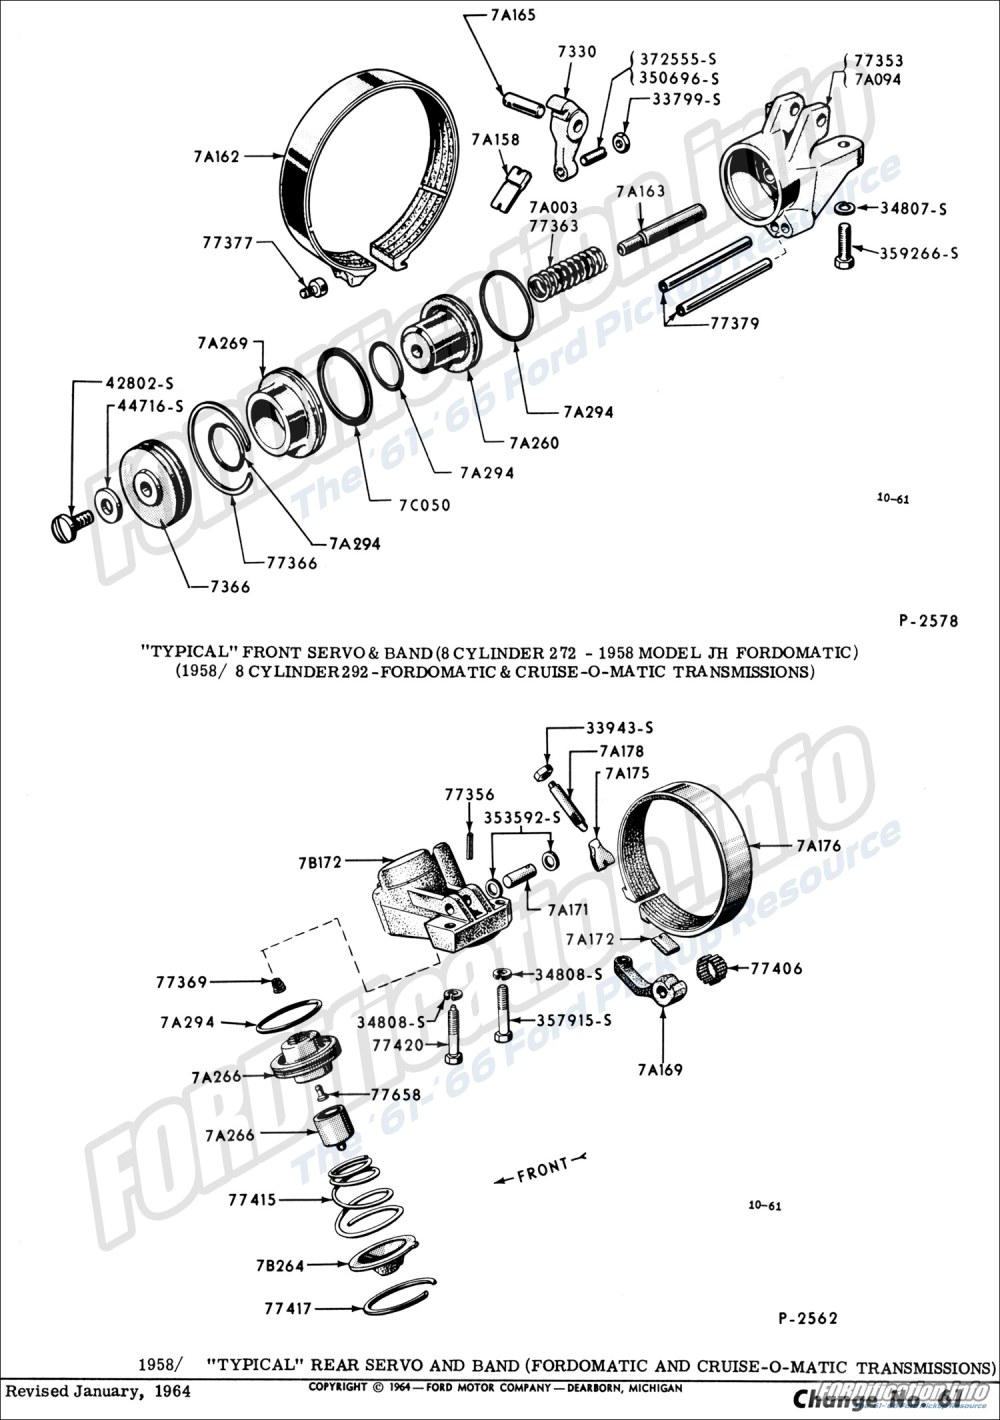 medium resolution of  1958 8 cylinder 292 fordomatic cruise o matic transmissions